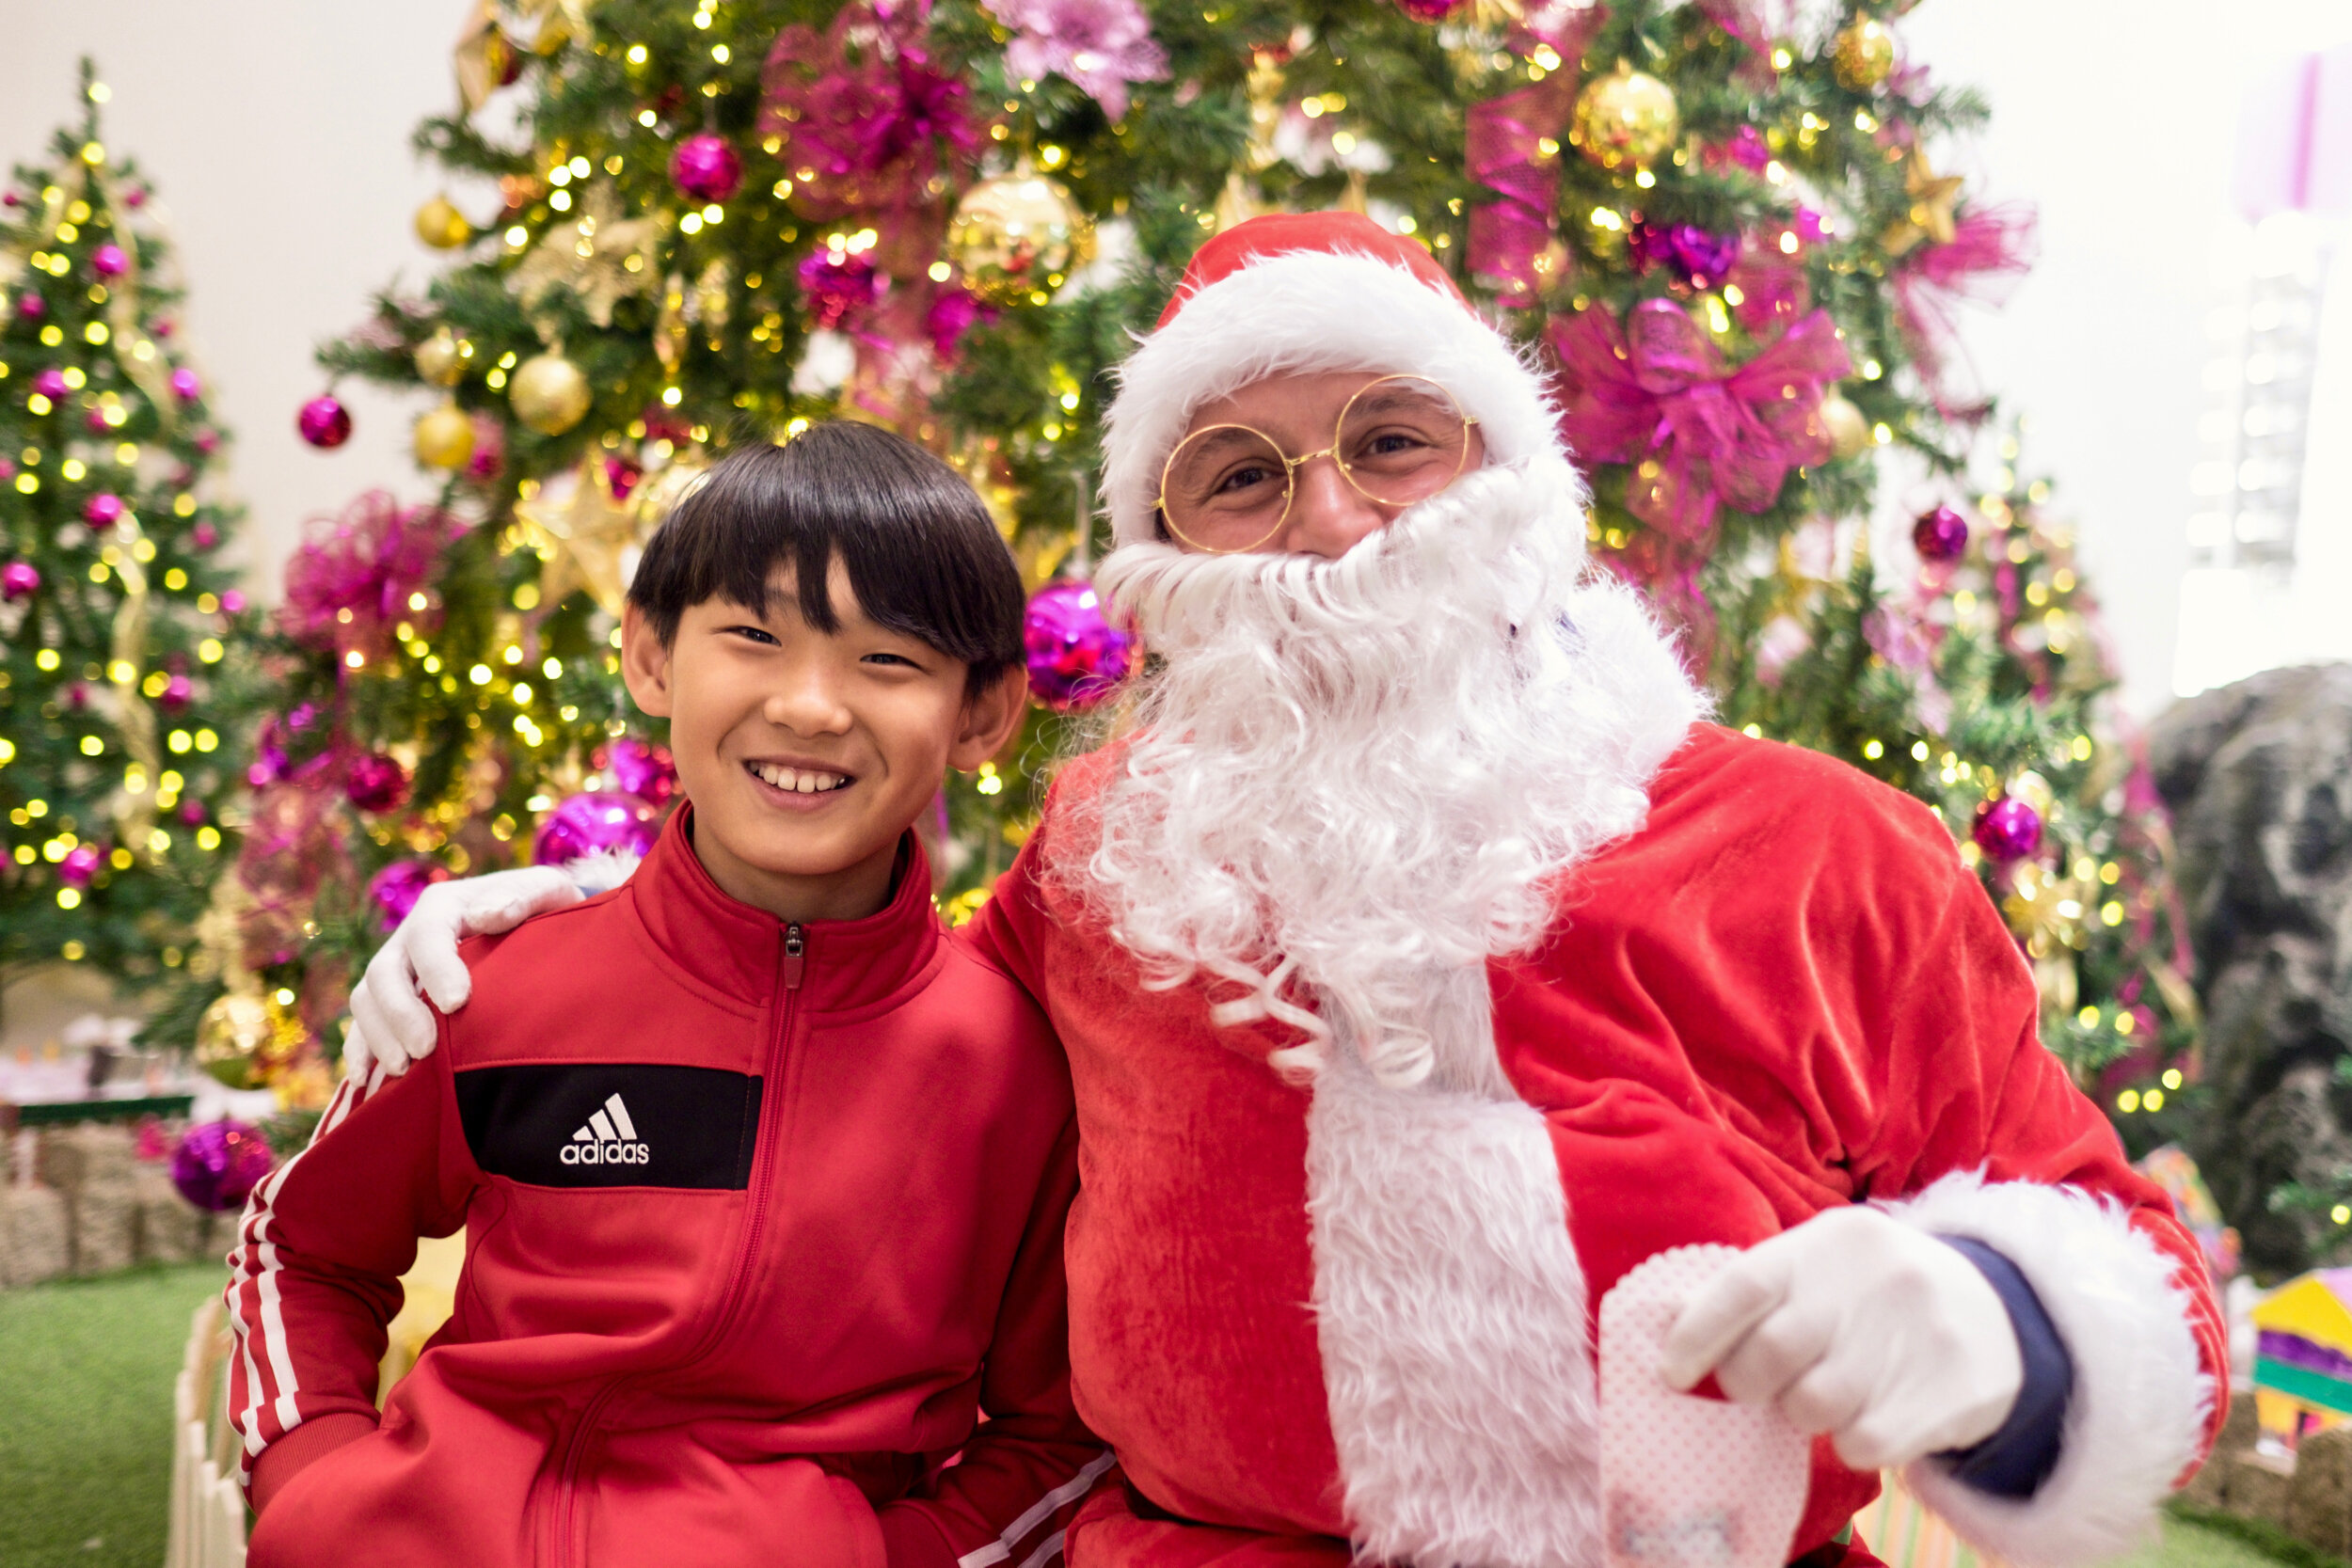 Photoshoot with Santa Clause-348.jpg